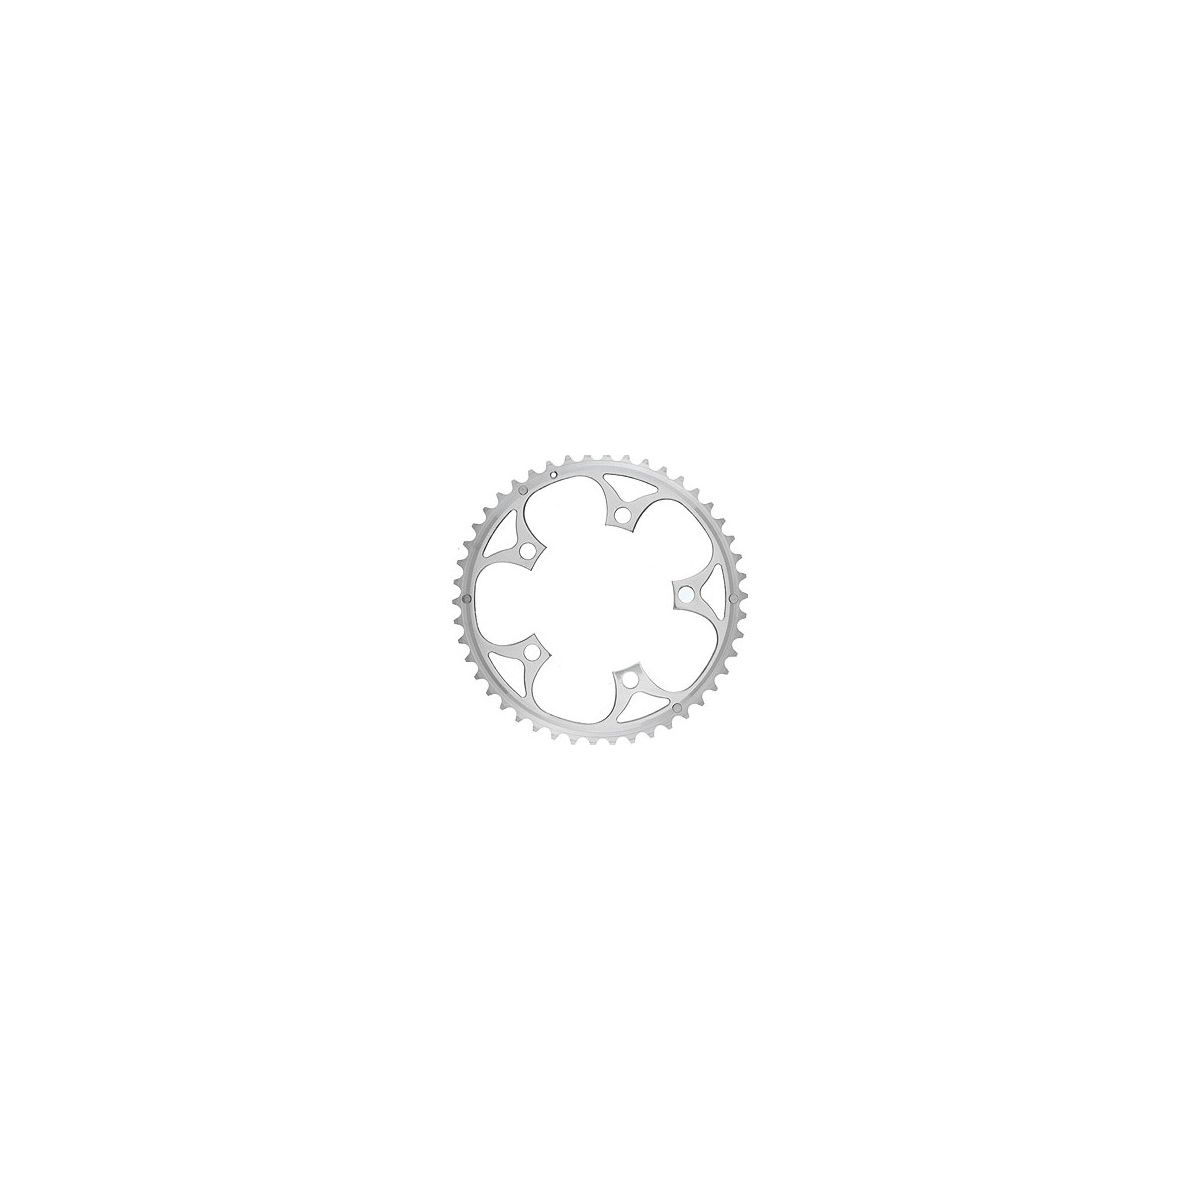 Zephyr 8-/9-/10-speed 46-tooth chainring